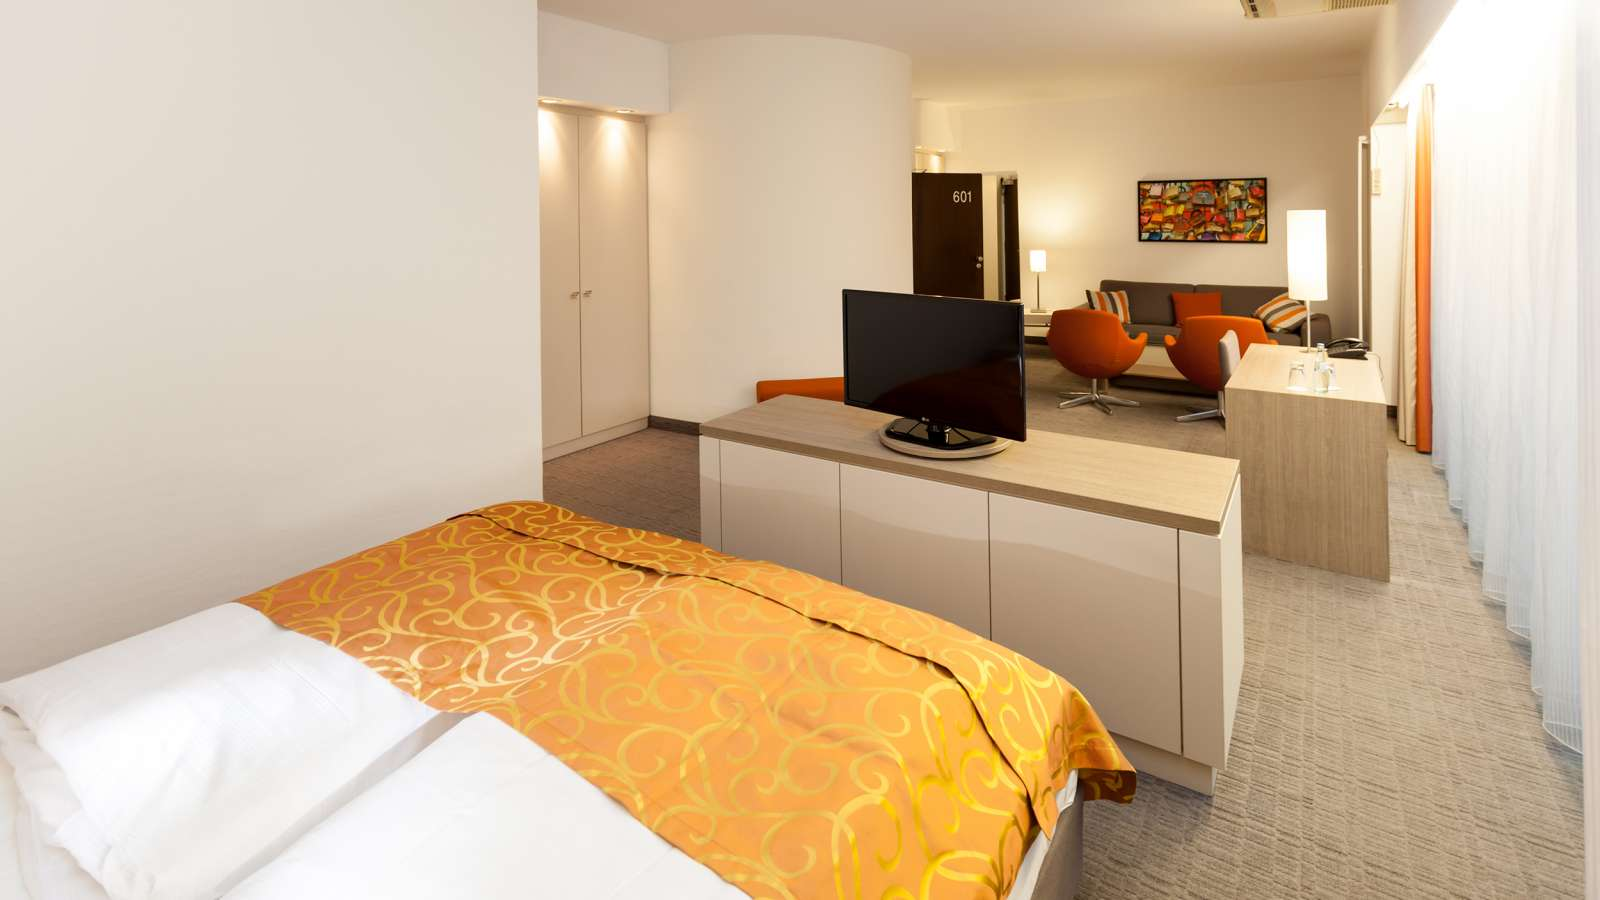 A modern double room at Centro Hotel Kommerz